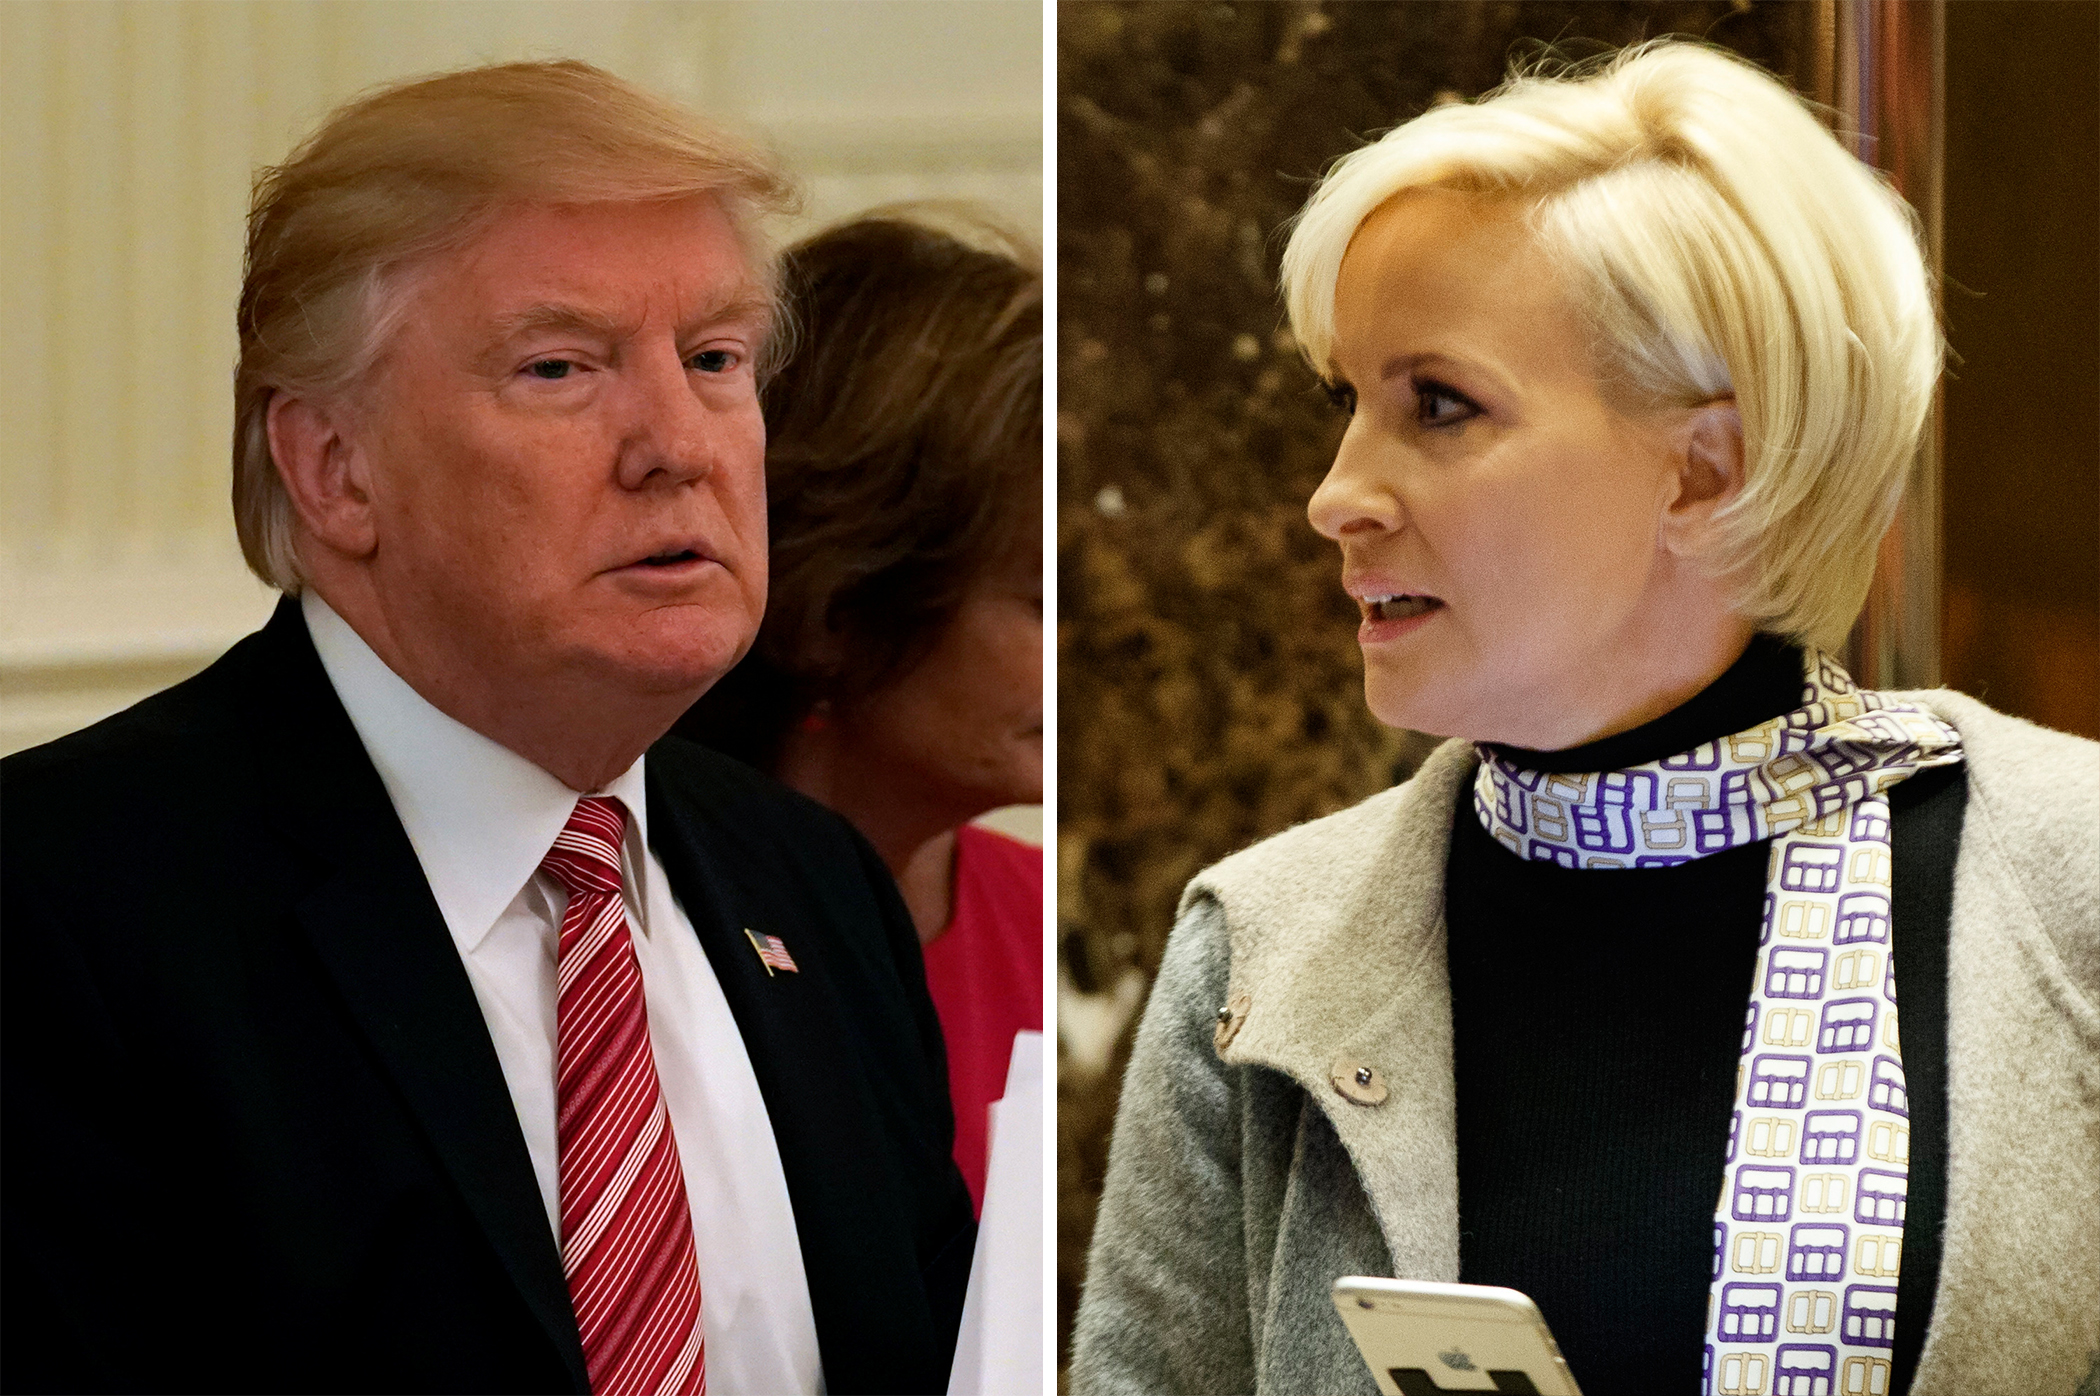 Mika Brzezinski Tweet Donald Trump On Women And Blood Time